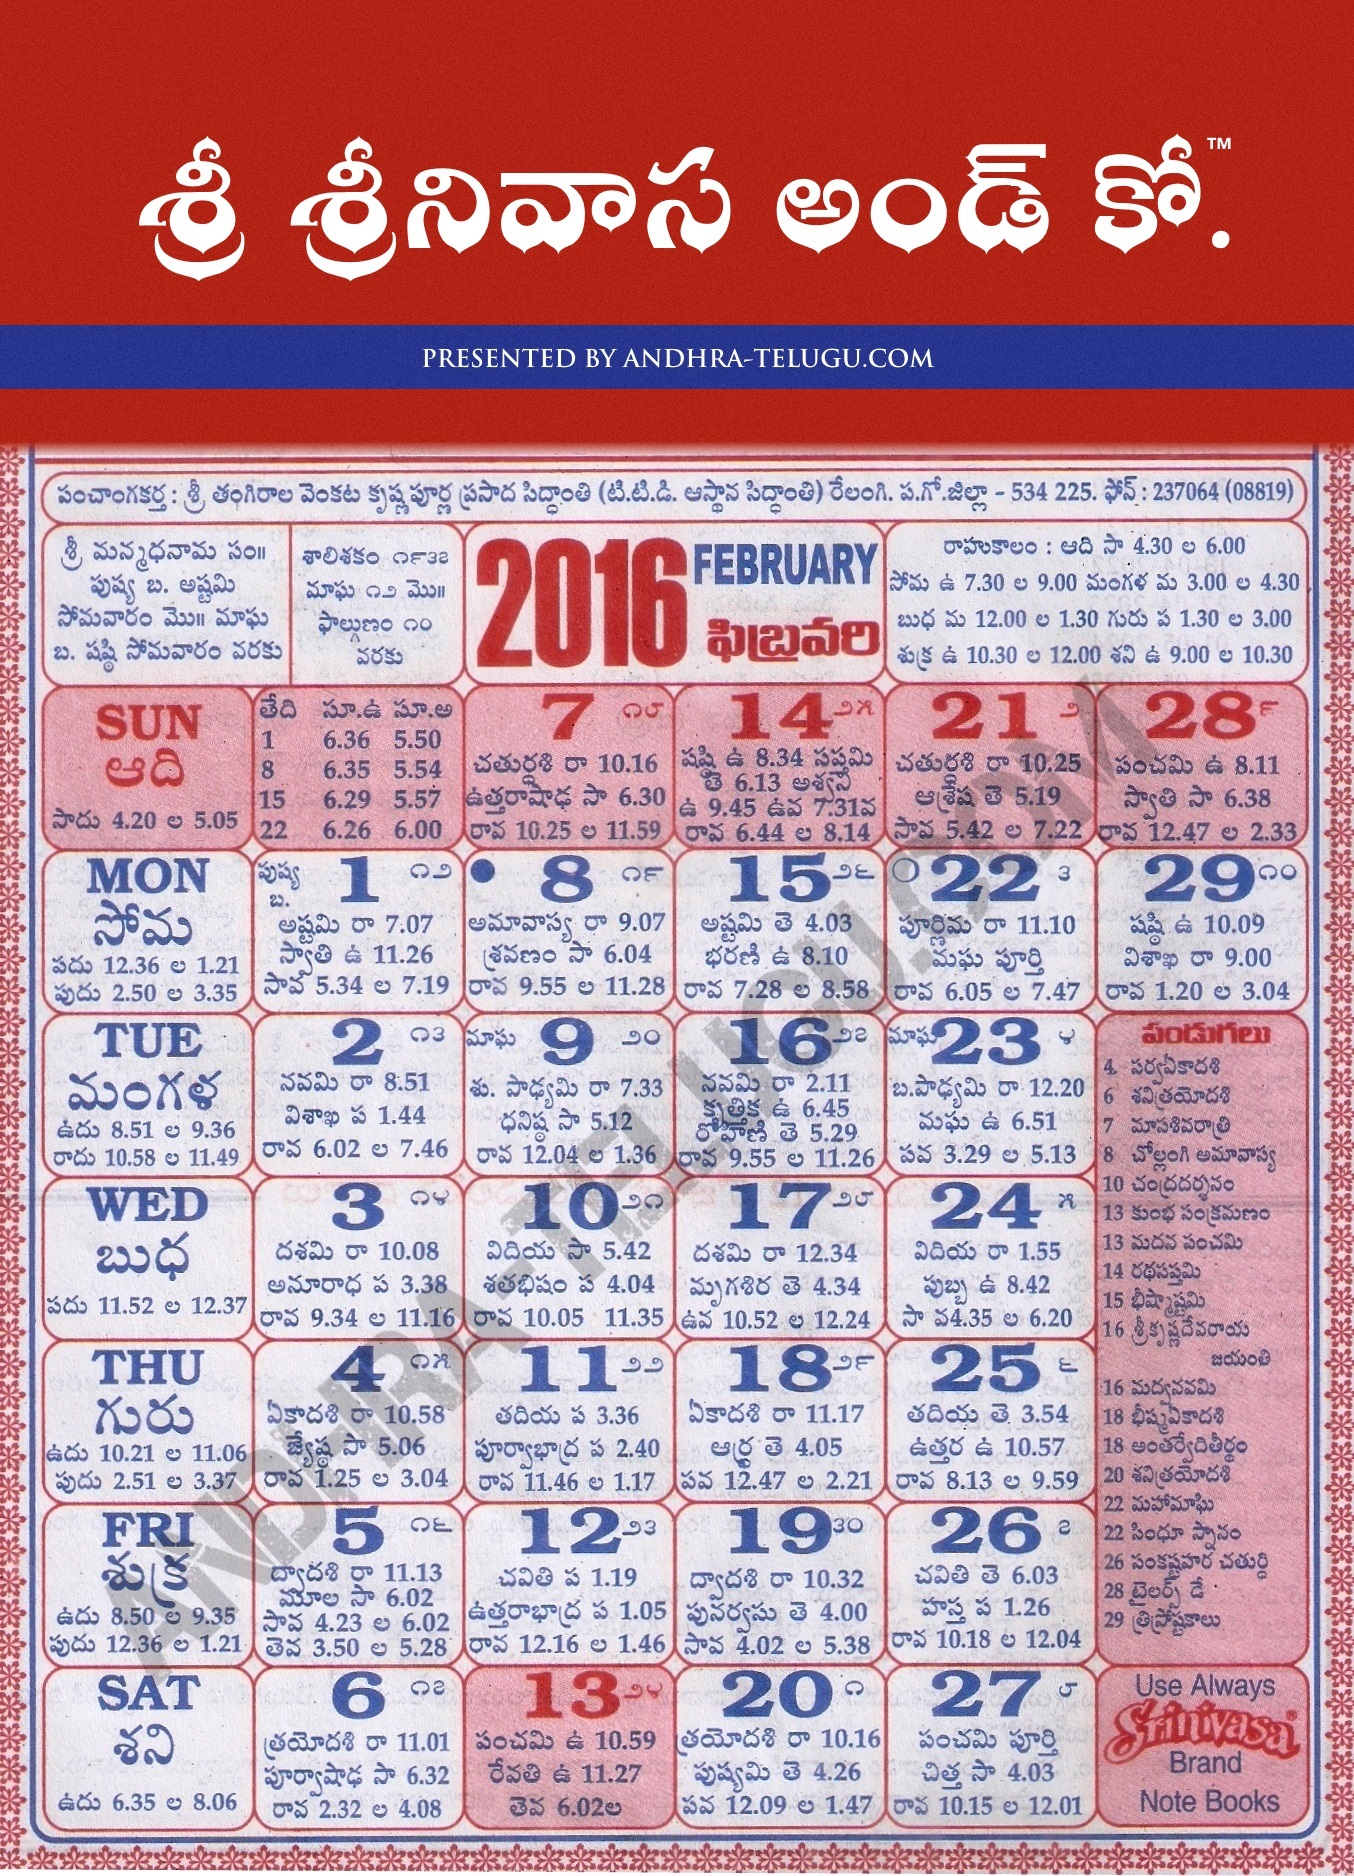 Srinivasa and Co Telugu Calendar 2016 | Andhra-Telugu